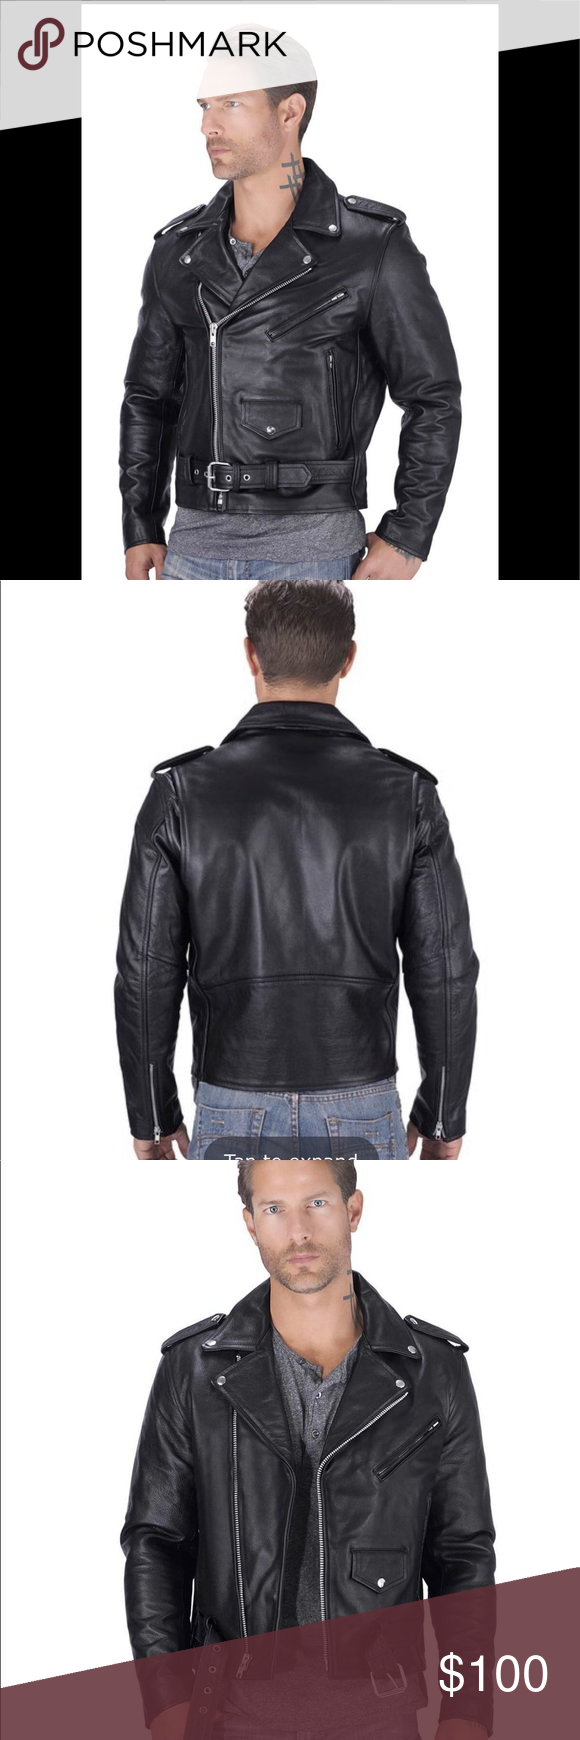 Interstate Leather Classic Motorcycle Jacket Sz Xl Jackets Leather Classic Motorcycles [ 1740 x 580 Pixel ]